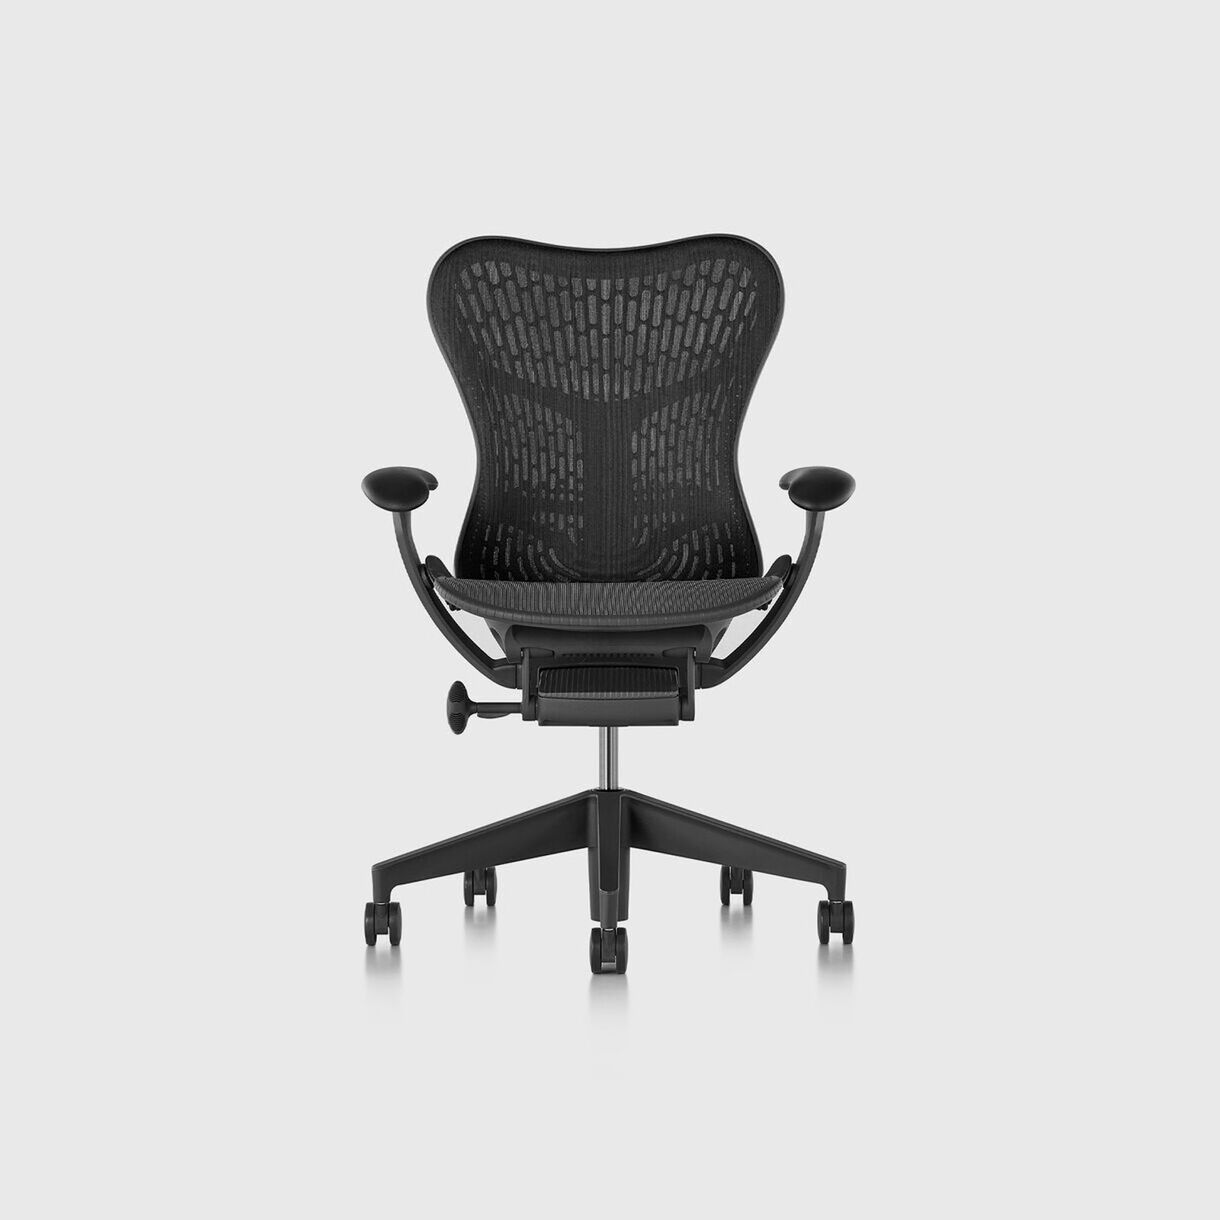 Mirra 2 Work Chair - Butterfly Suspension Graphite, Graphite Base & Frame - Adjustable Arms